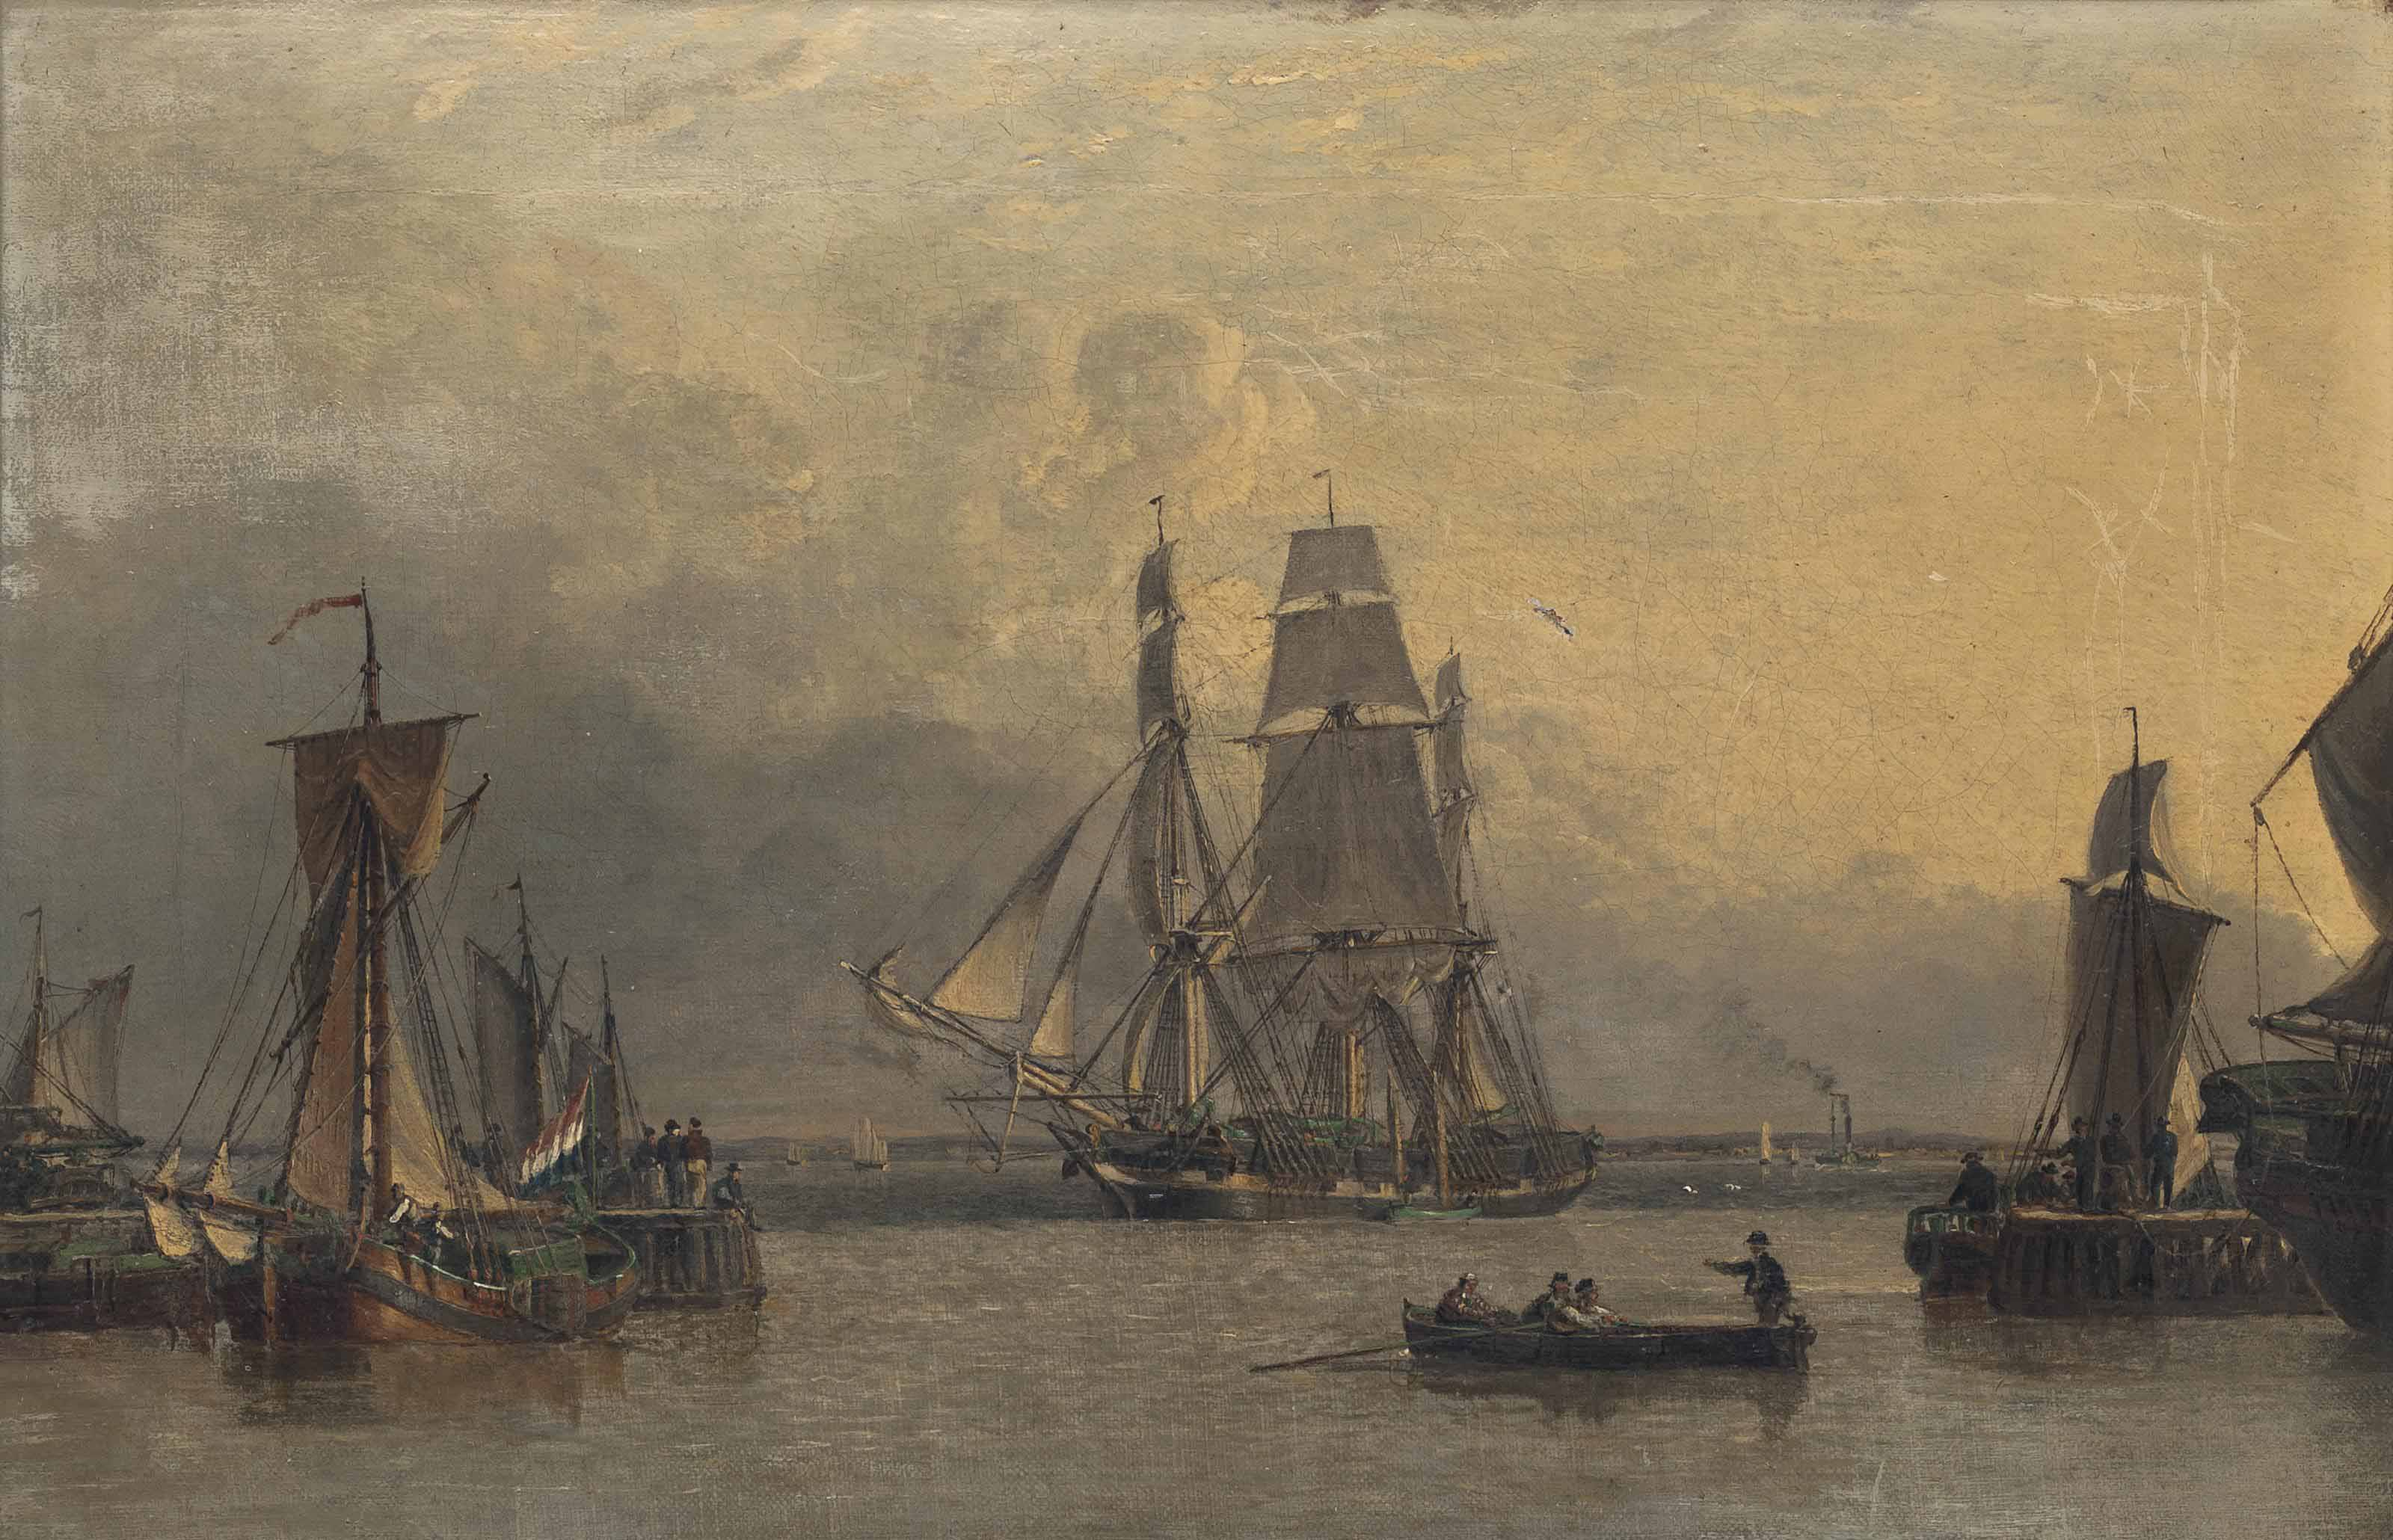 The William Lee arriving at the Humber Dock Basin, Hull, on her return from Calcutta, 22nd January 1839